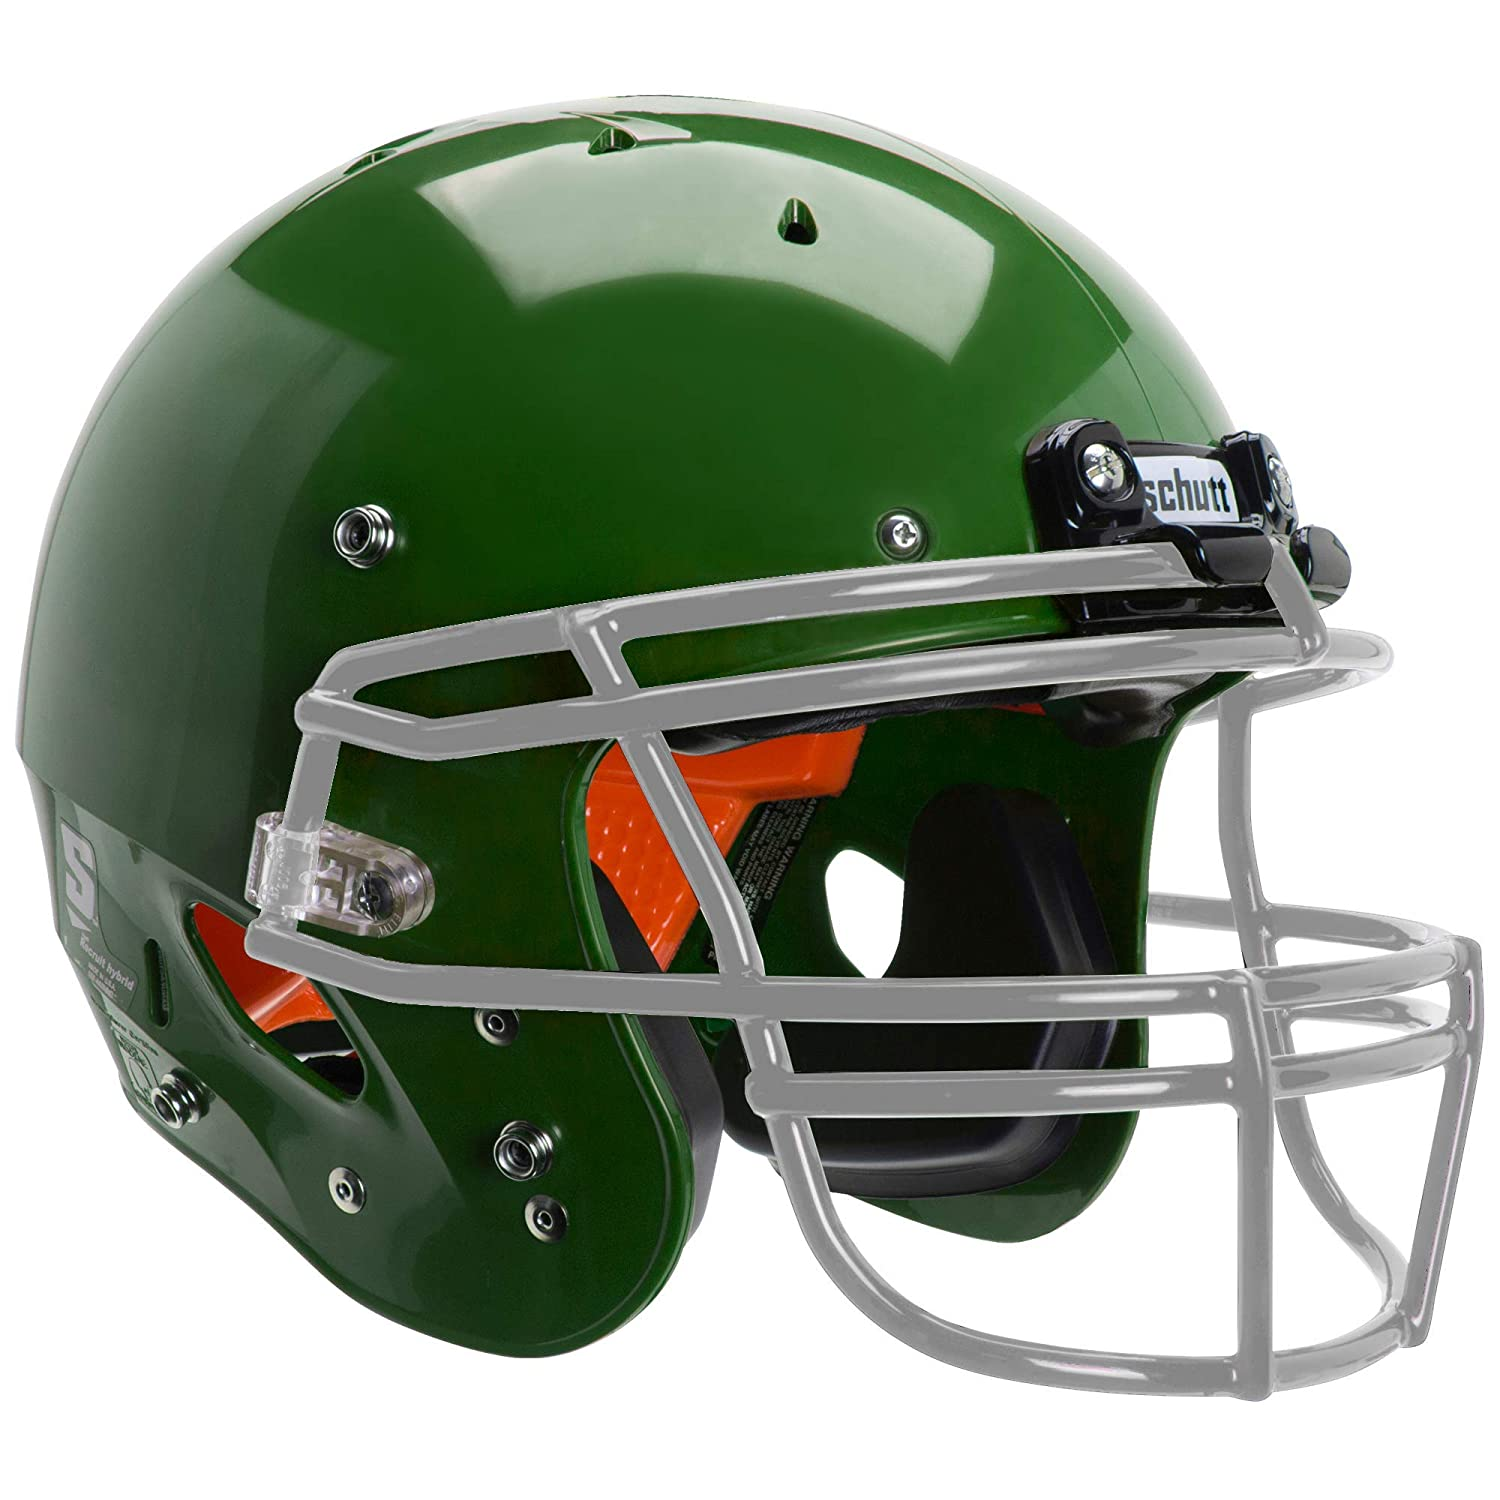 900a53b63c50 Amazon.com   Schutt Sports Recruit Hybrid Youth Football Helmet (Facemask  NOT Included)   Sports   Outdoors